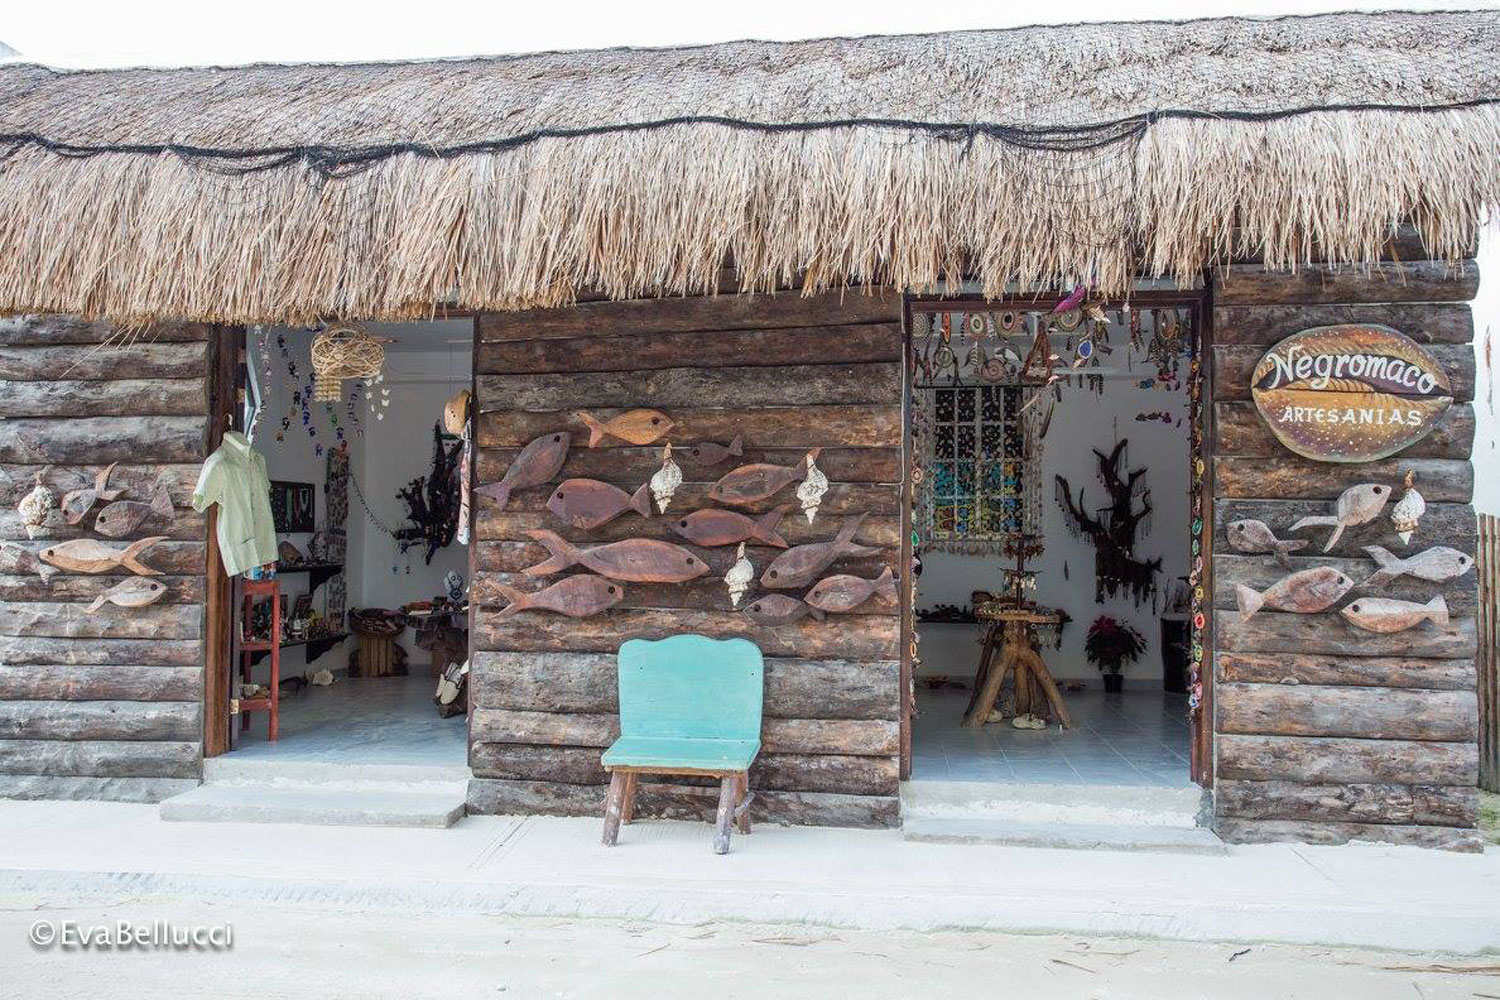 Hammocks_and_Ruins_Riviera_Maya_What_to_Do_Cancun_Playa_Del_Carmen_Islands_Isla_Holbox_2.jpg